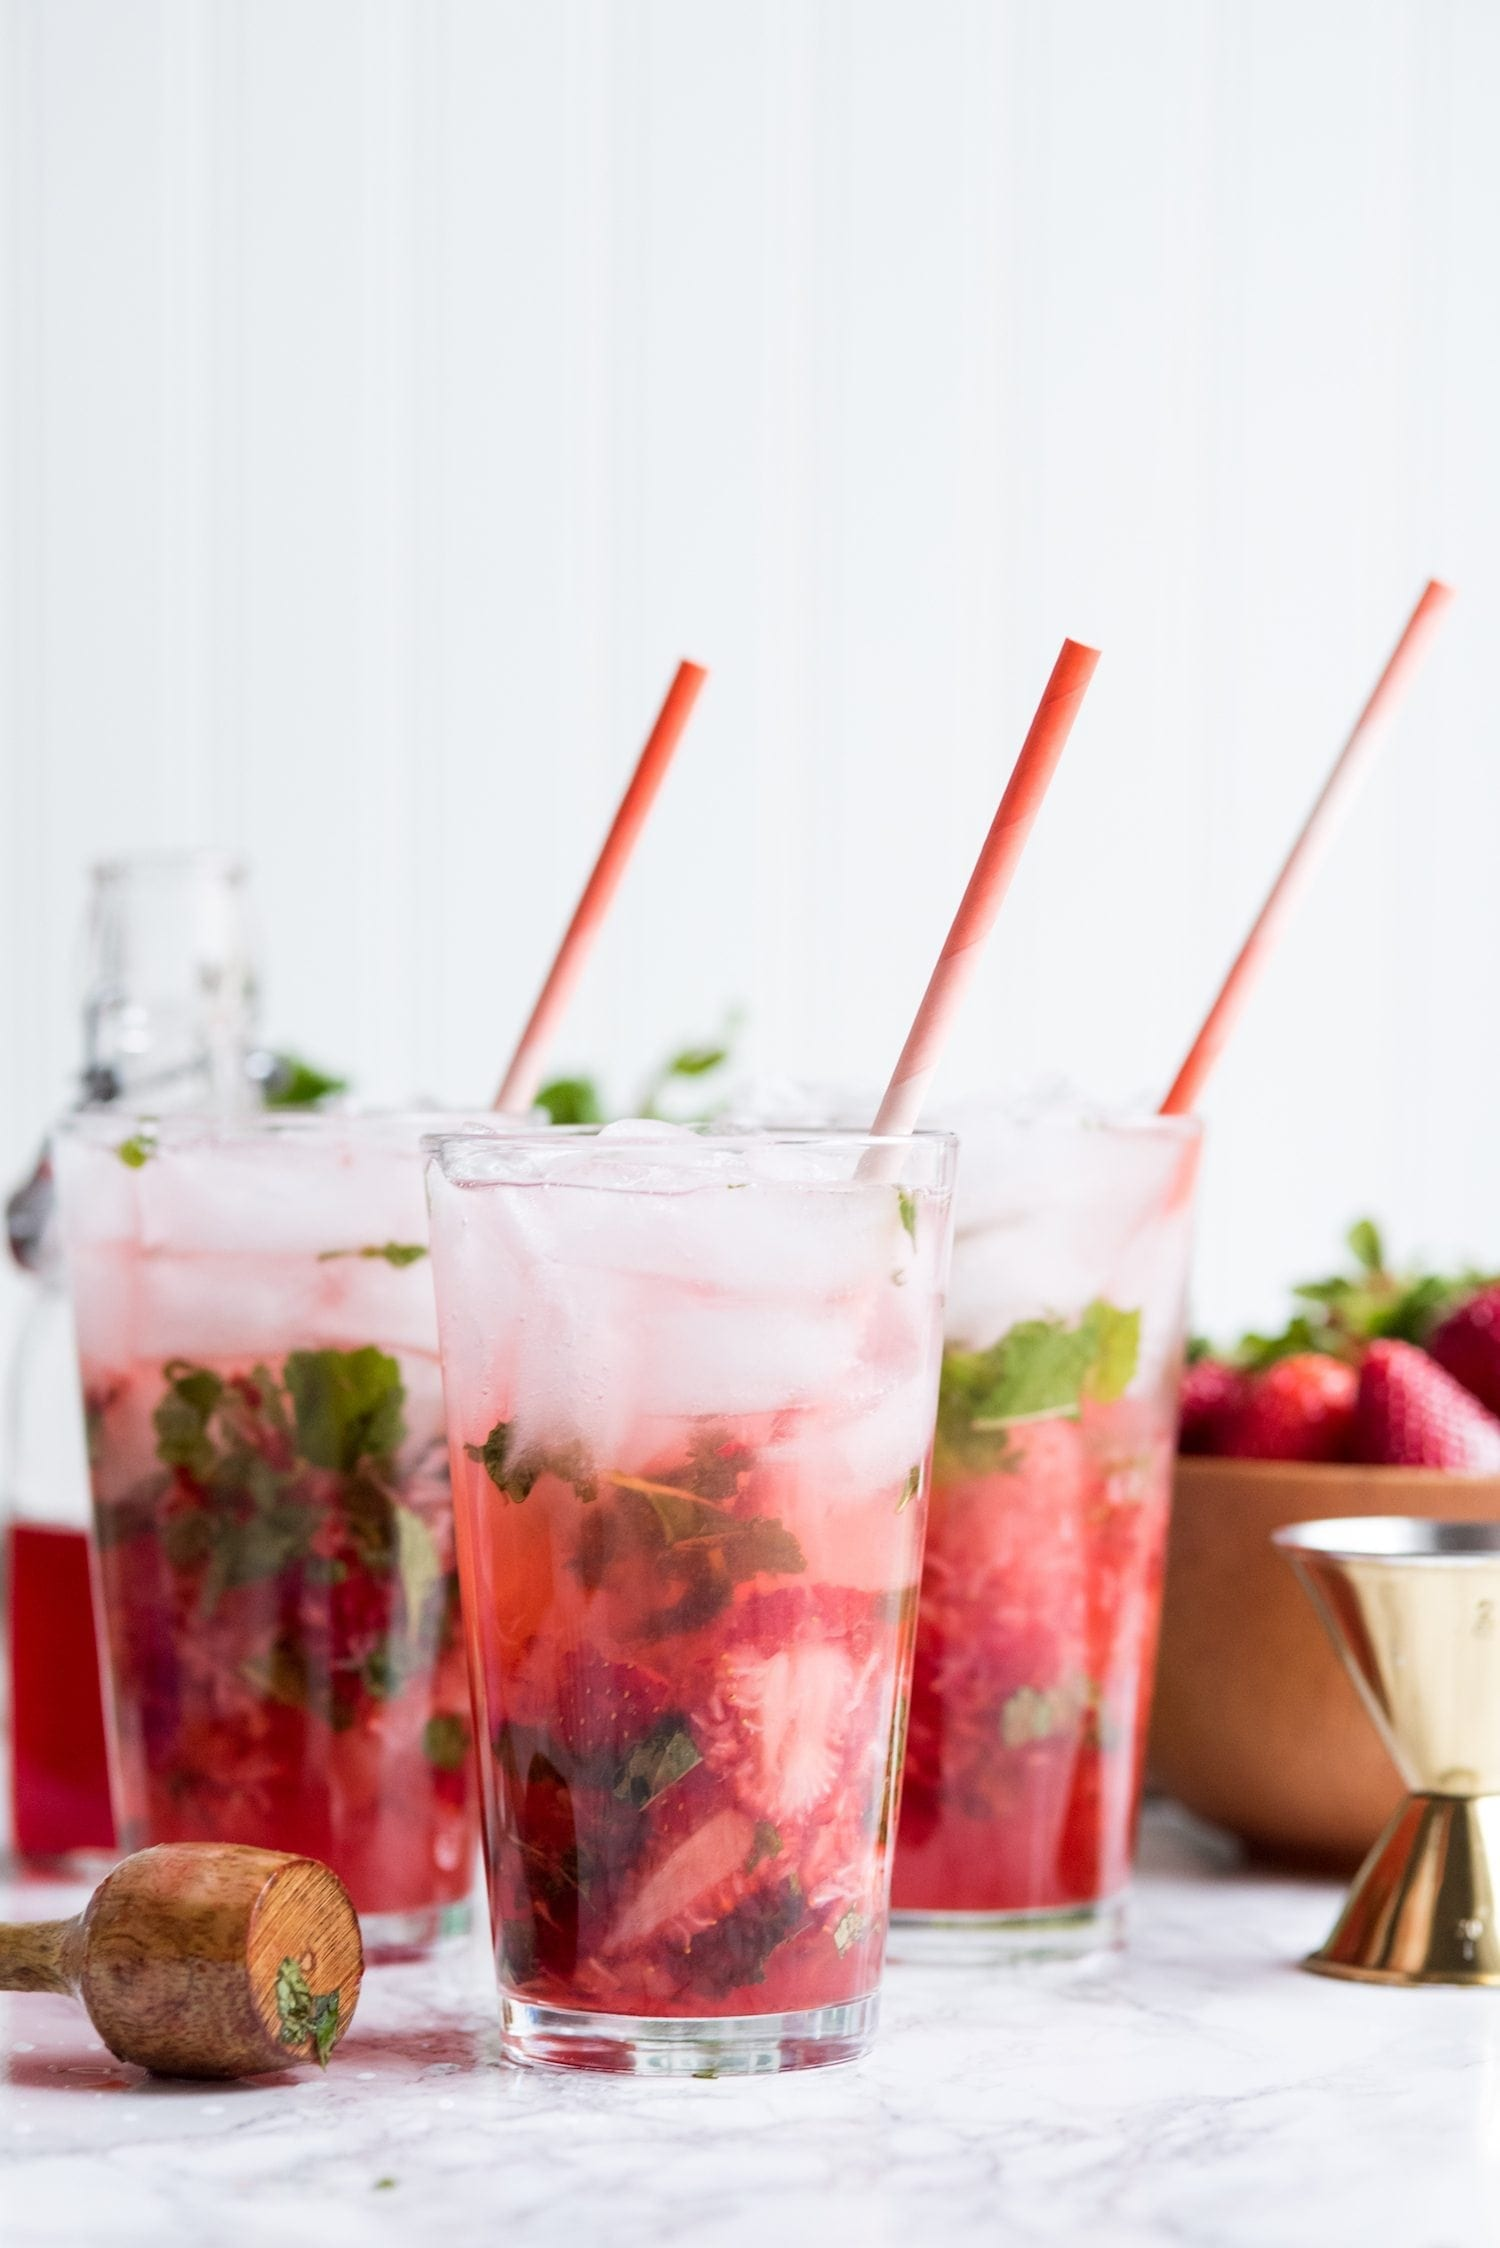 The Ultimate Strawberry Mojito Recipe | Cocktail recipes, entertaining tips, party ideas and party menus from @cydconverse